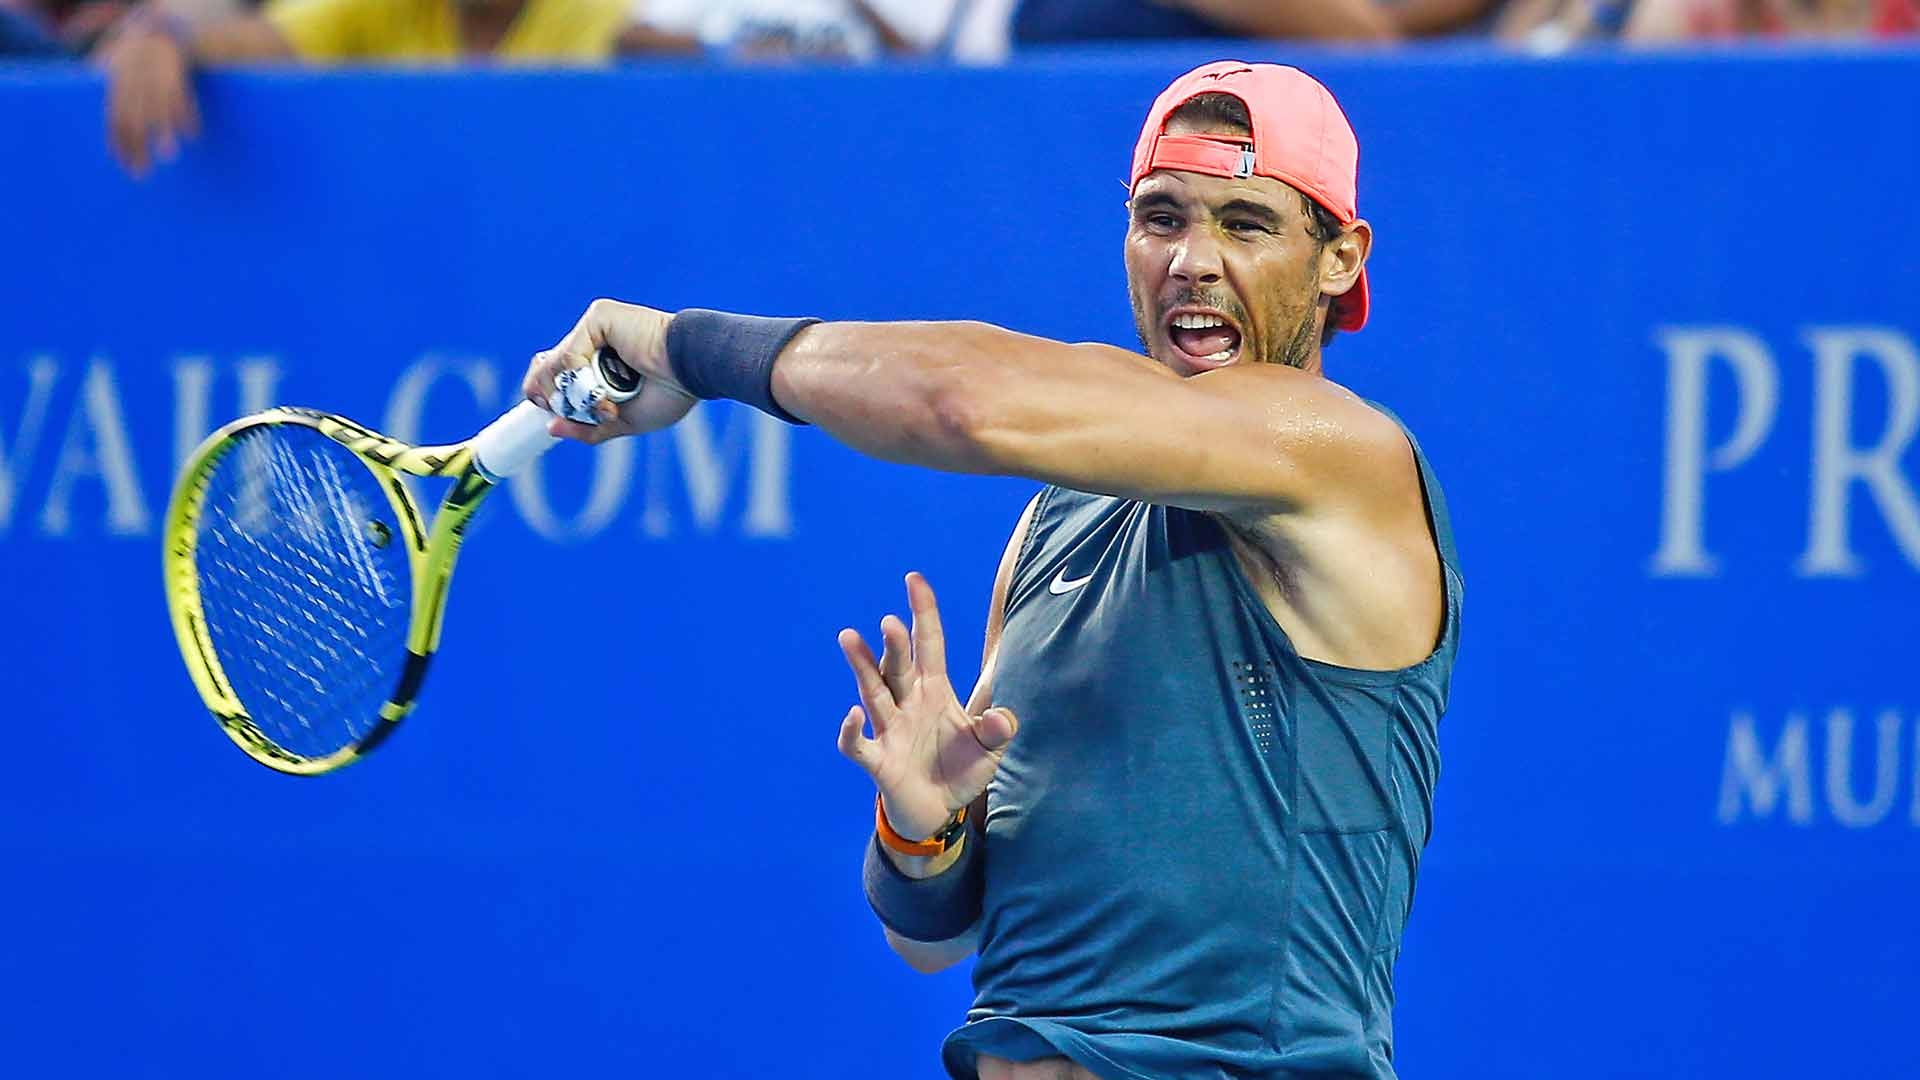 Nadal To Challenge DjokovicFor World No. 1 in Indian Wells